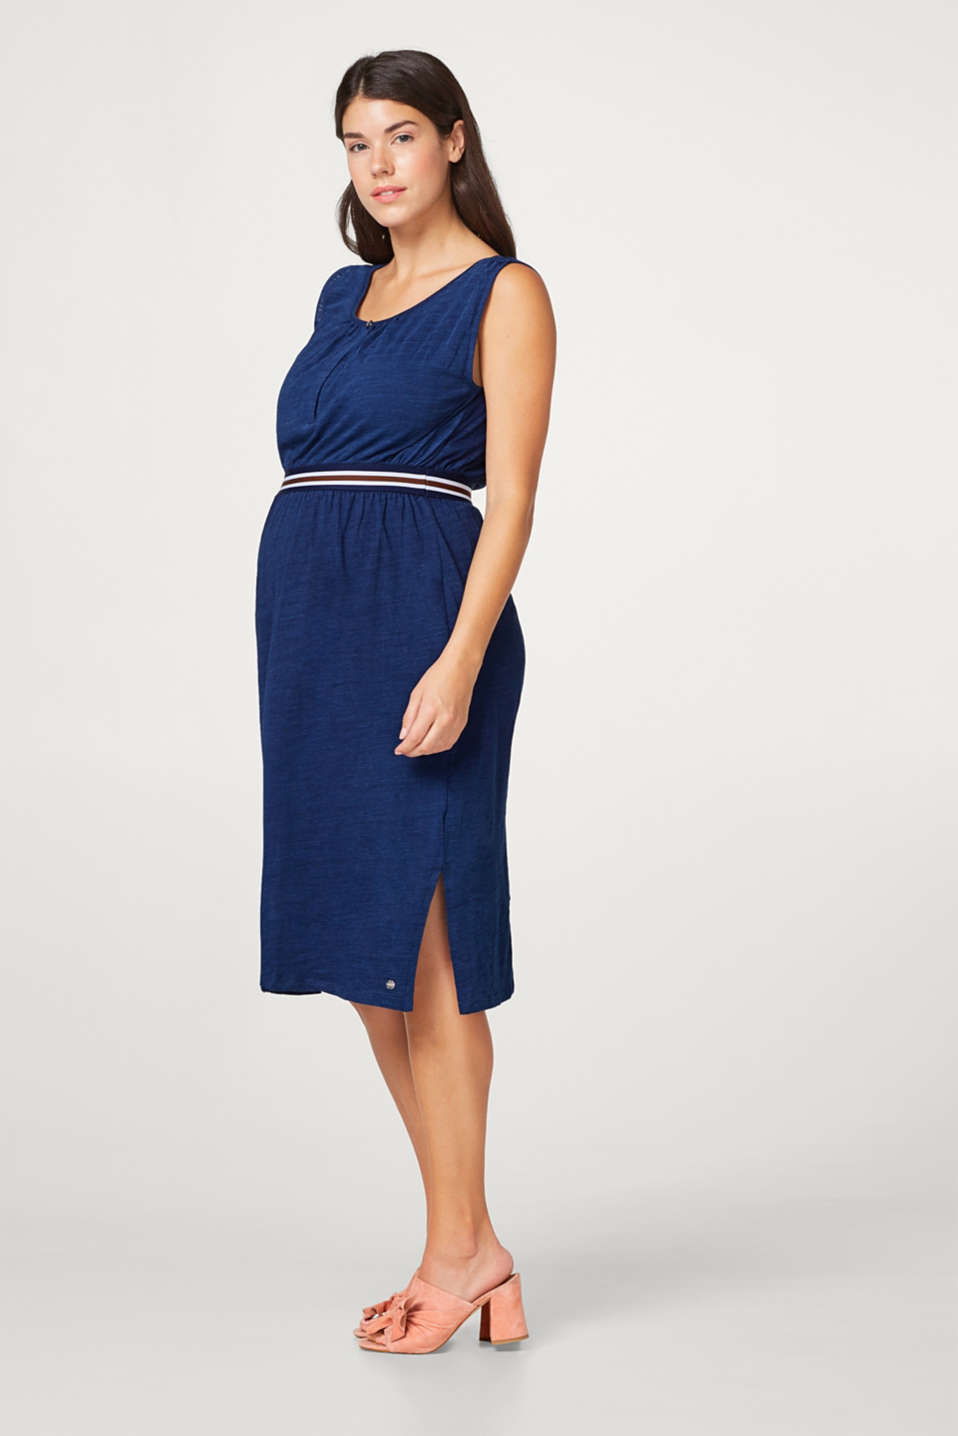 Airy slub jersey dress with a nursing function